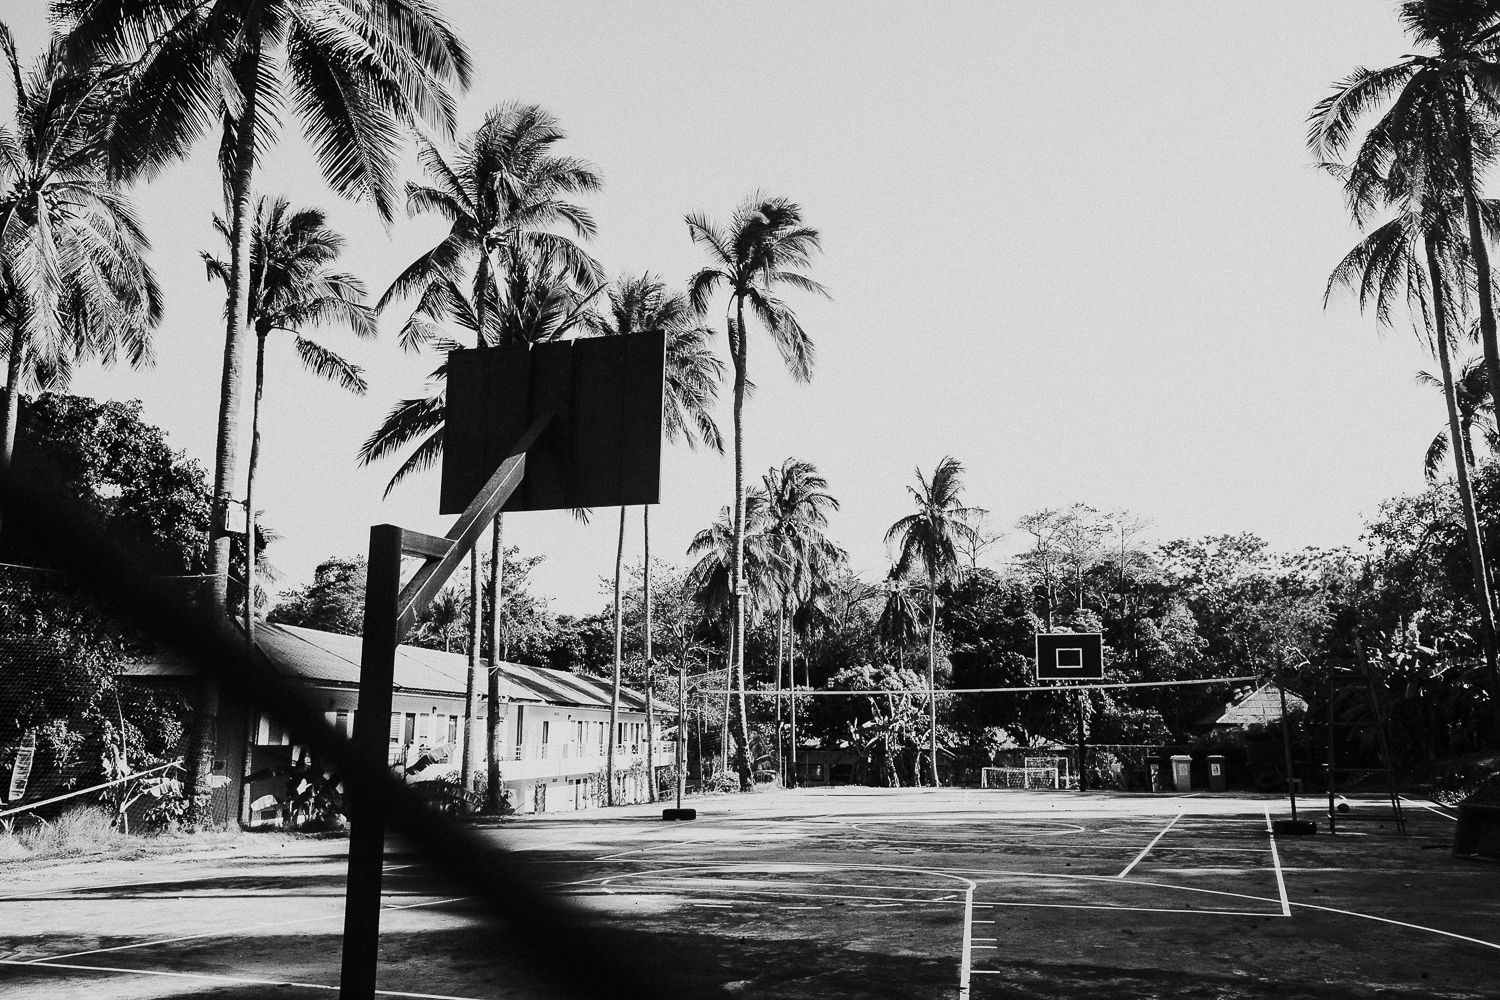 London family photography 2020 black and white basketball court in thailand with palm trees